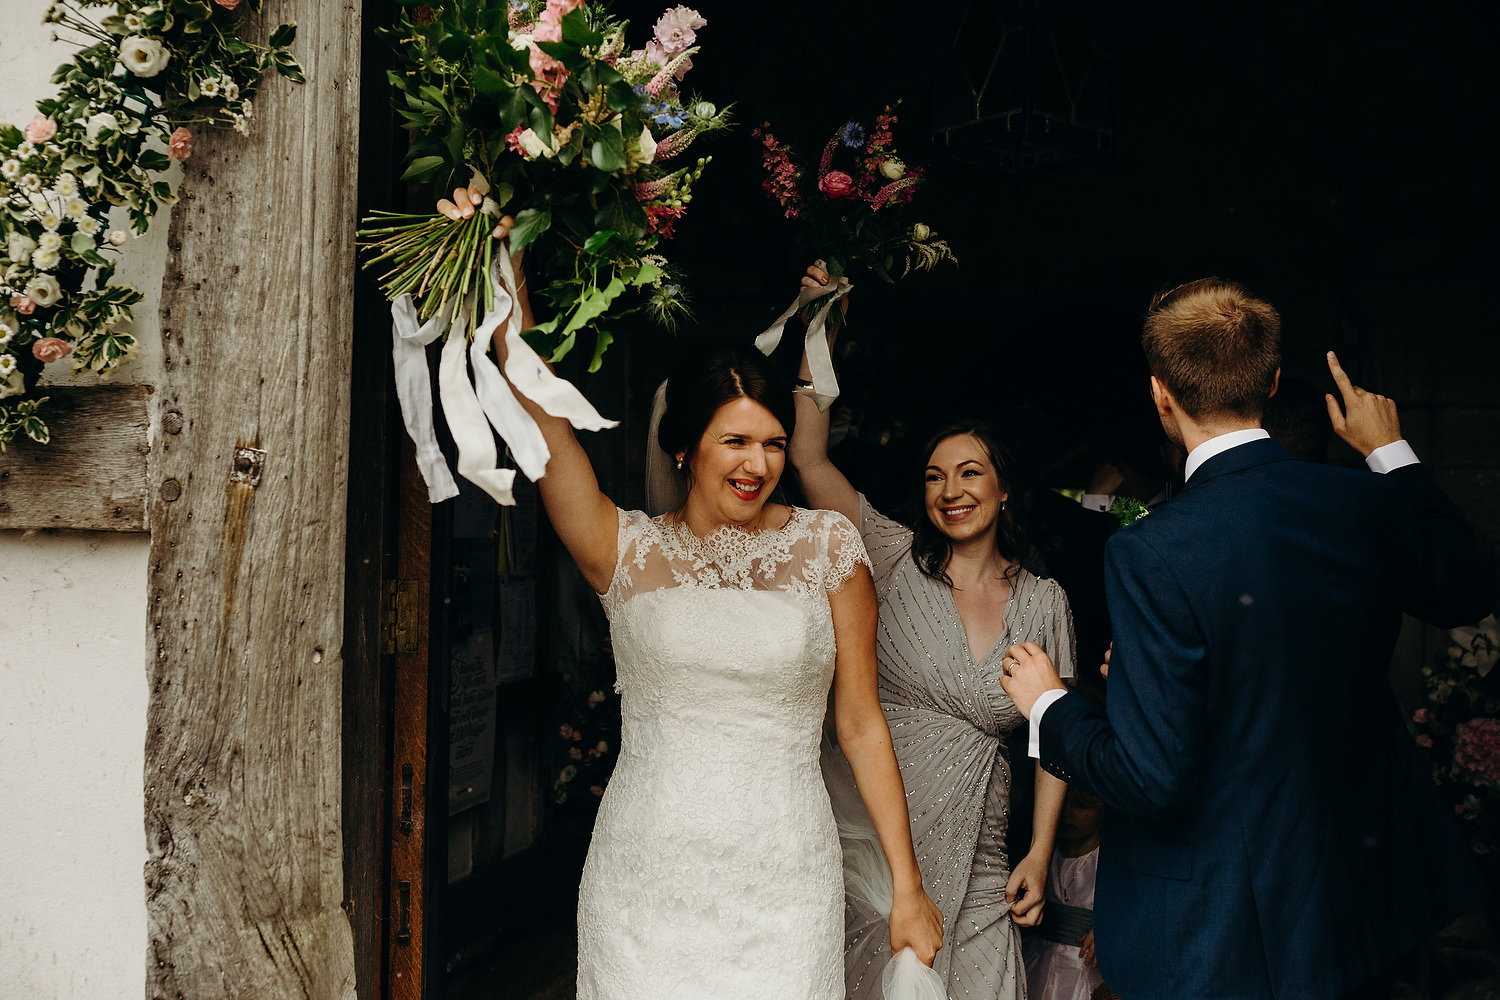 bride holds bouquet in air after ceremony